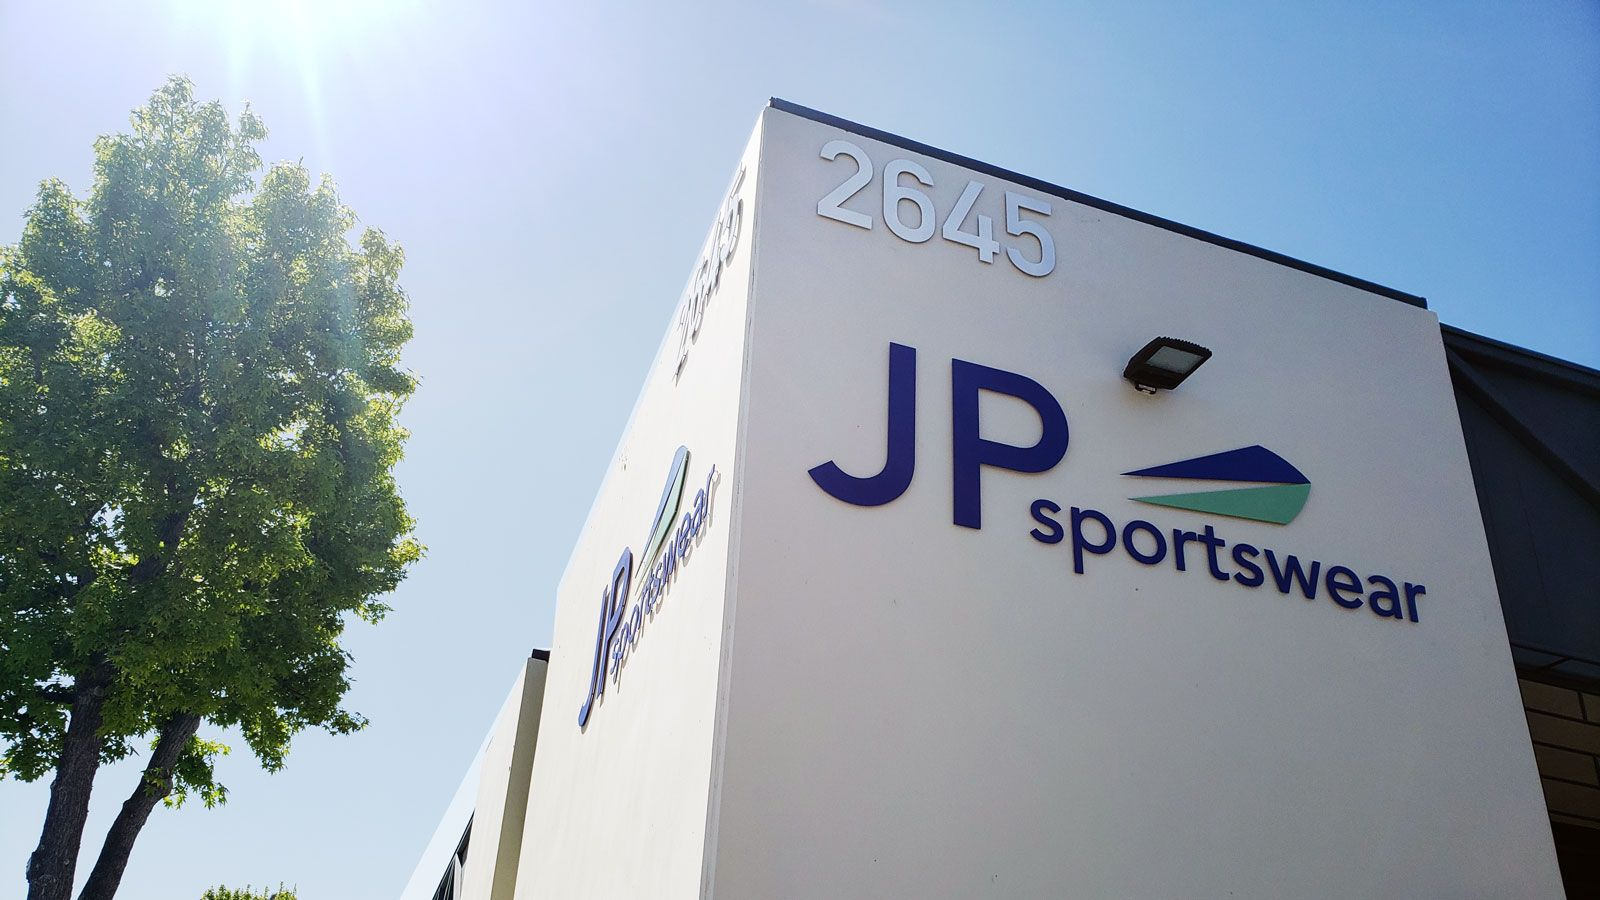 Image showing brand design project for JP Sportswear Aluminum letters